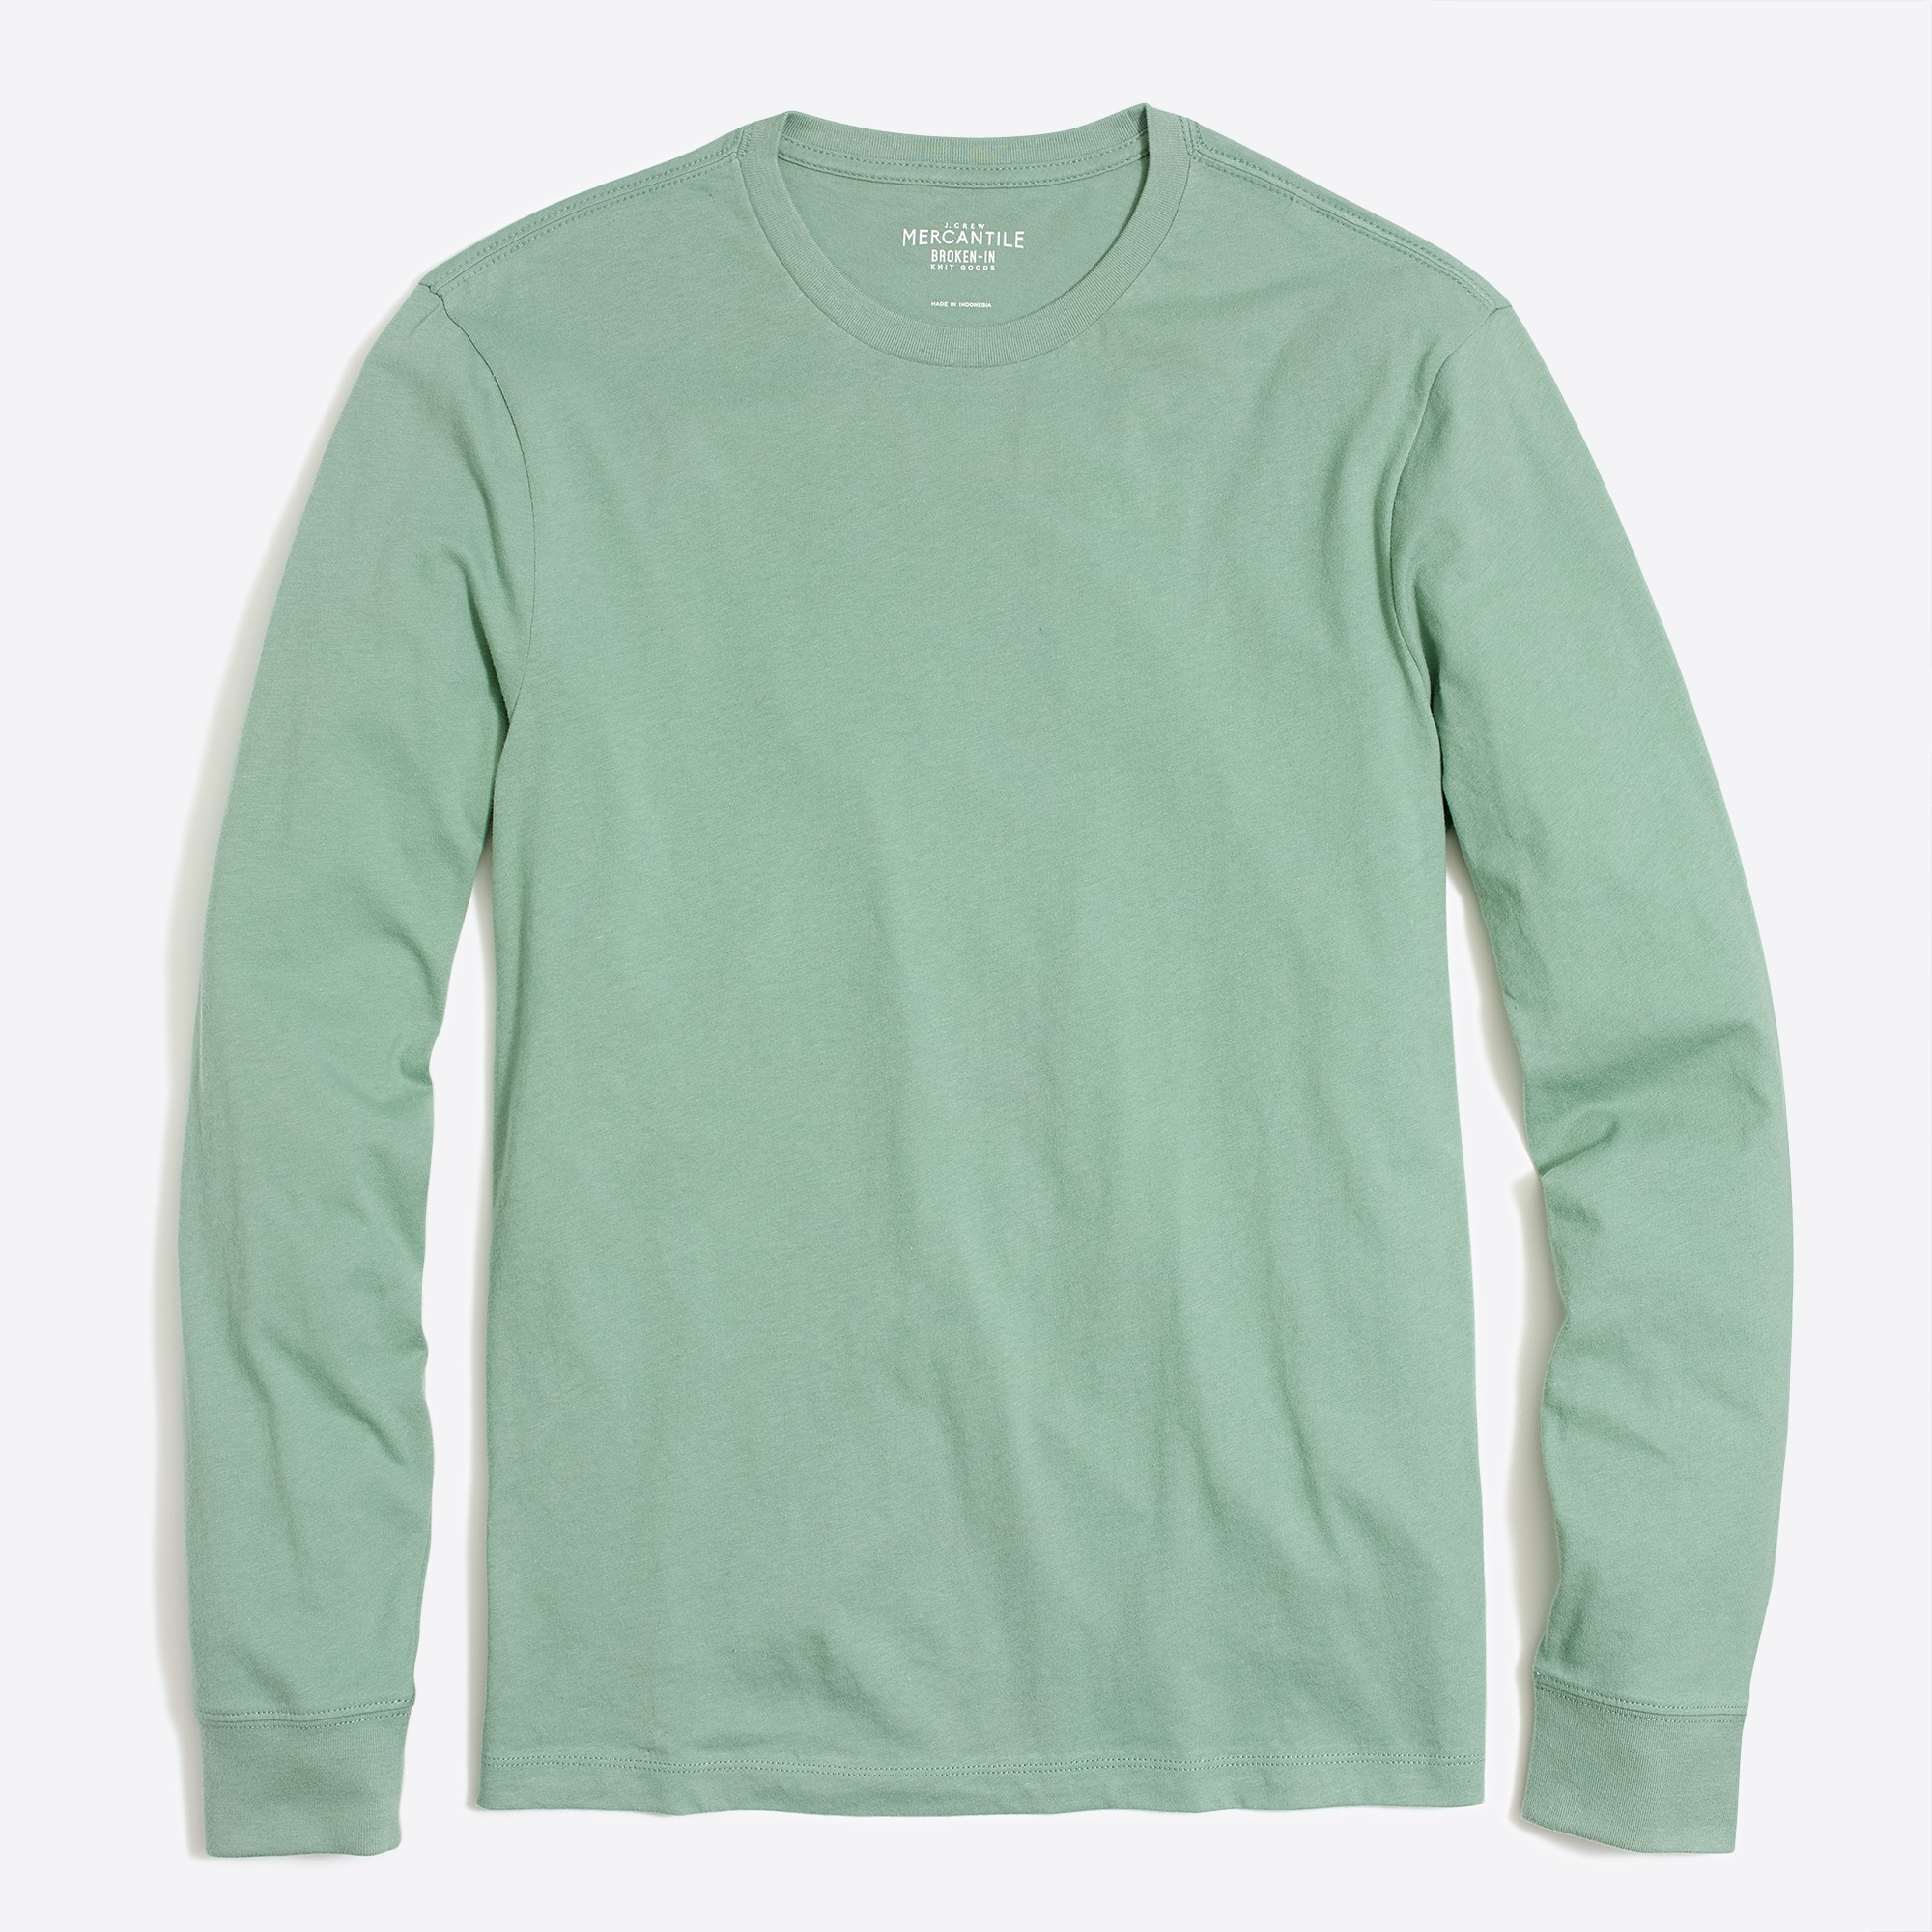 J. Crew Mercantile Long-sleeve T-shirt